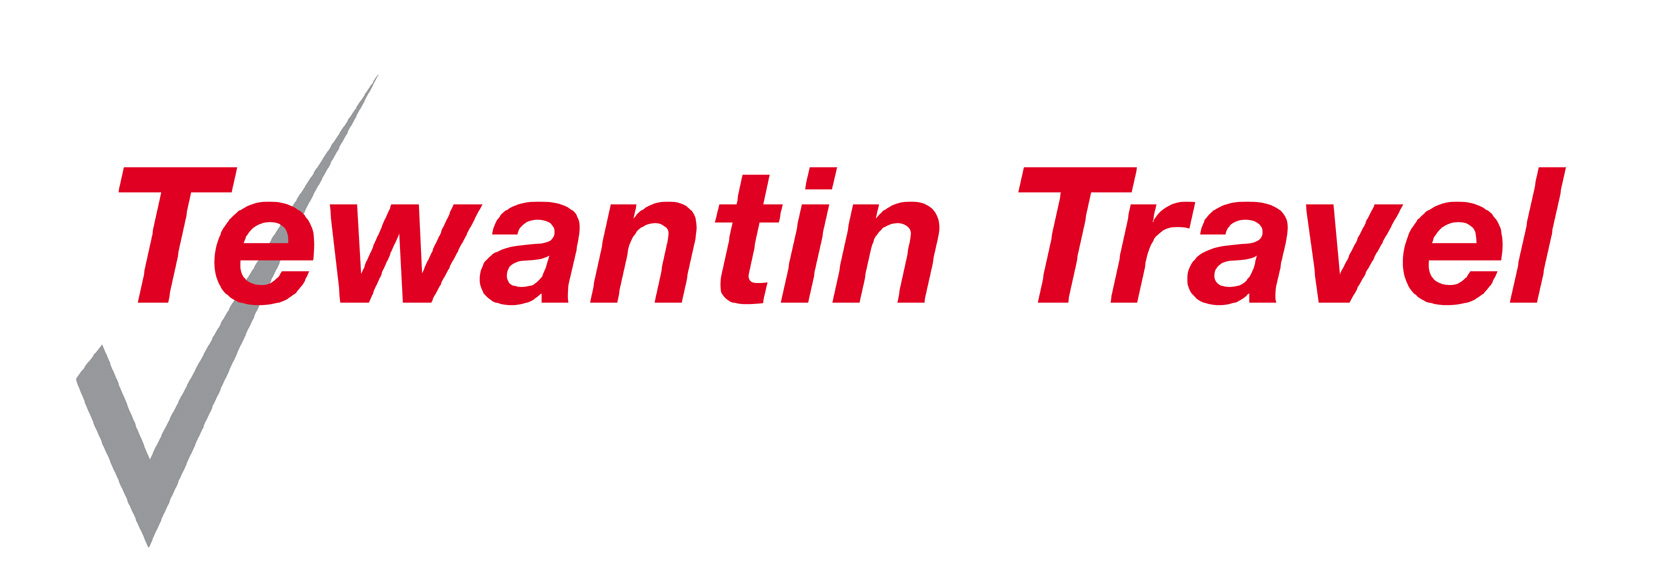 Tewantin Travel Logo